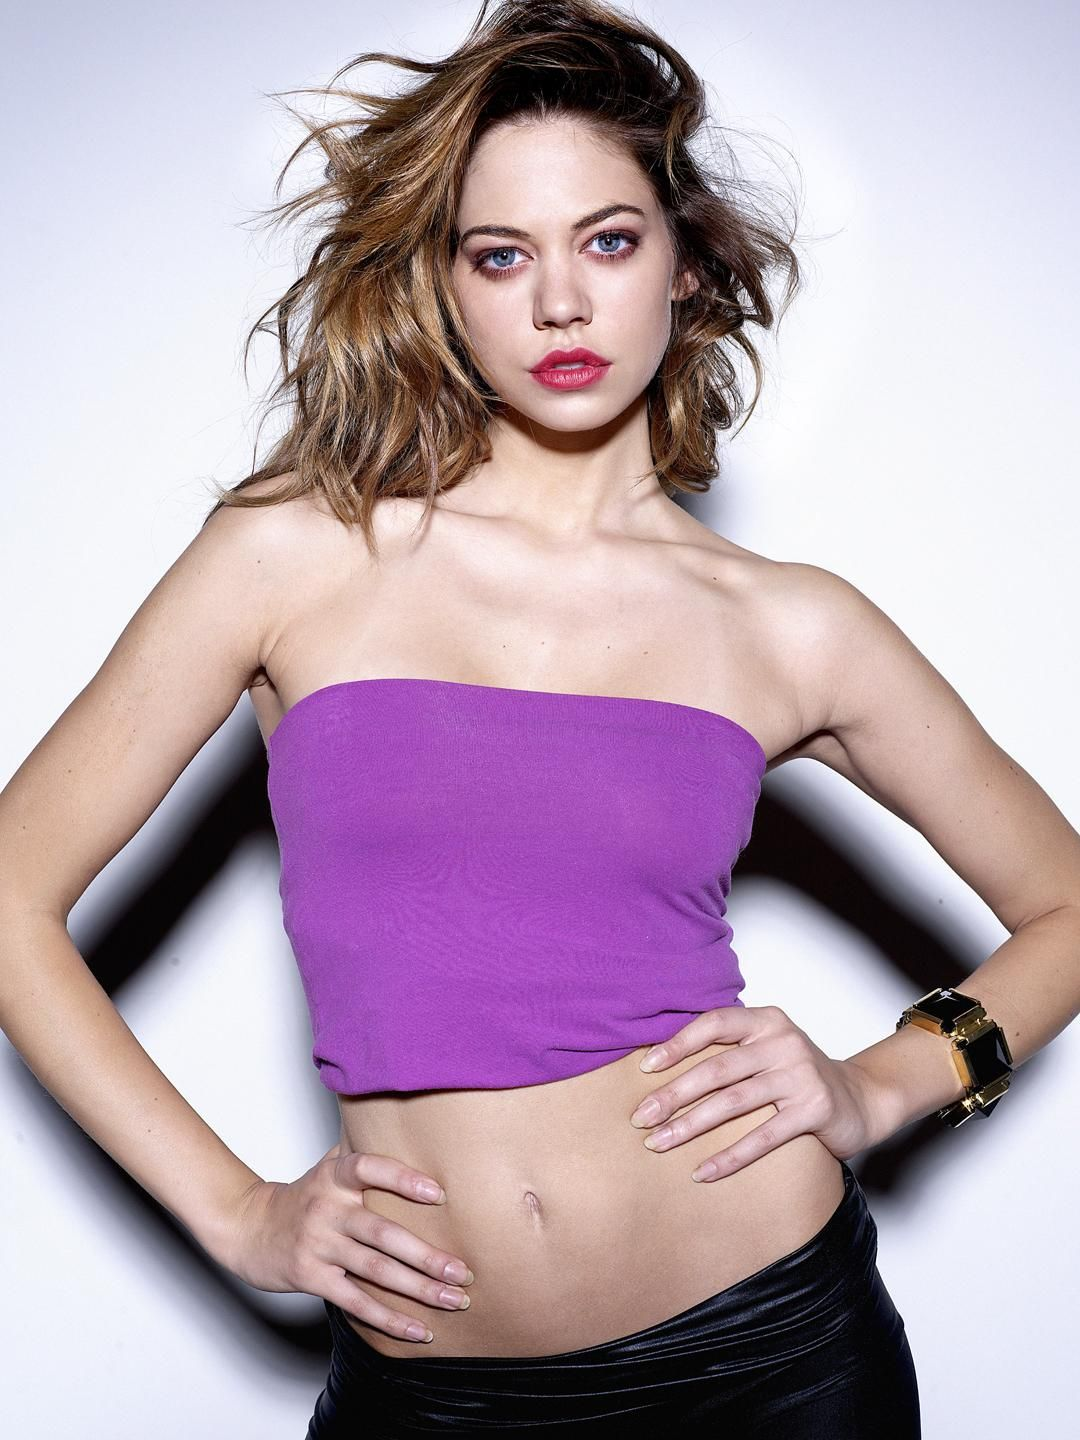 analeigh tipton wiki